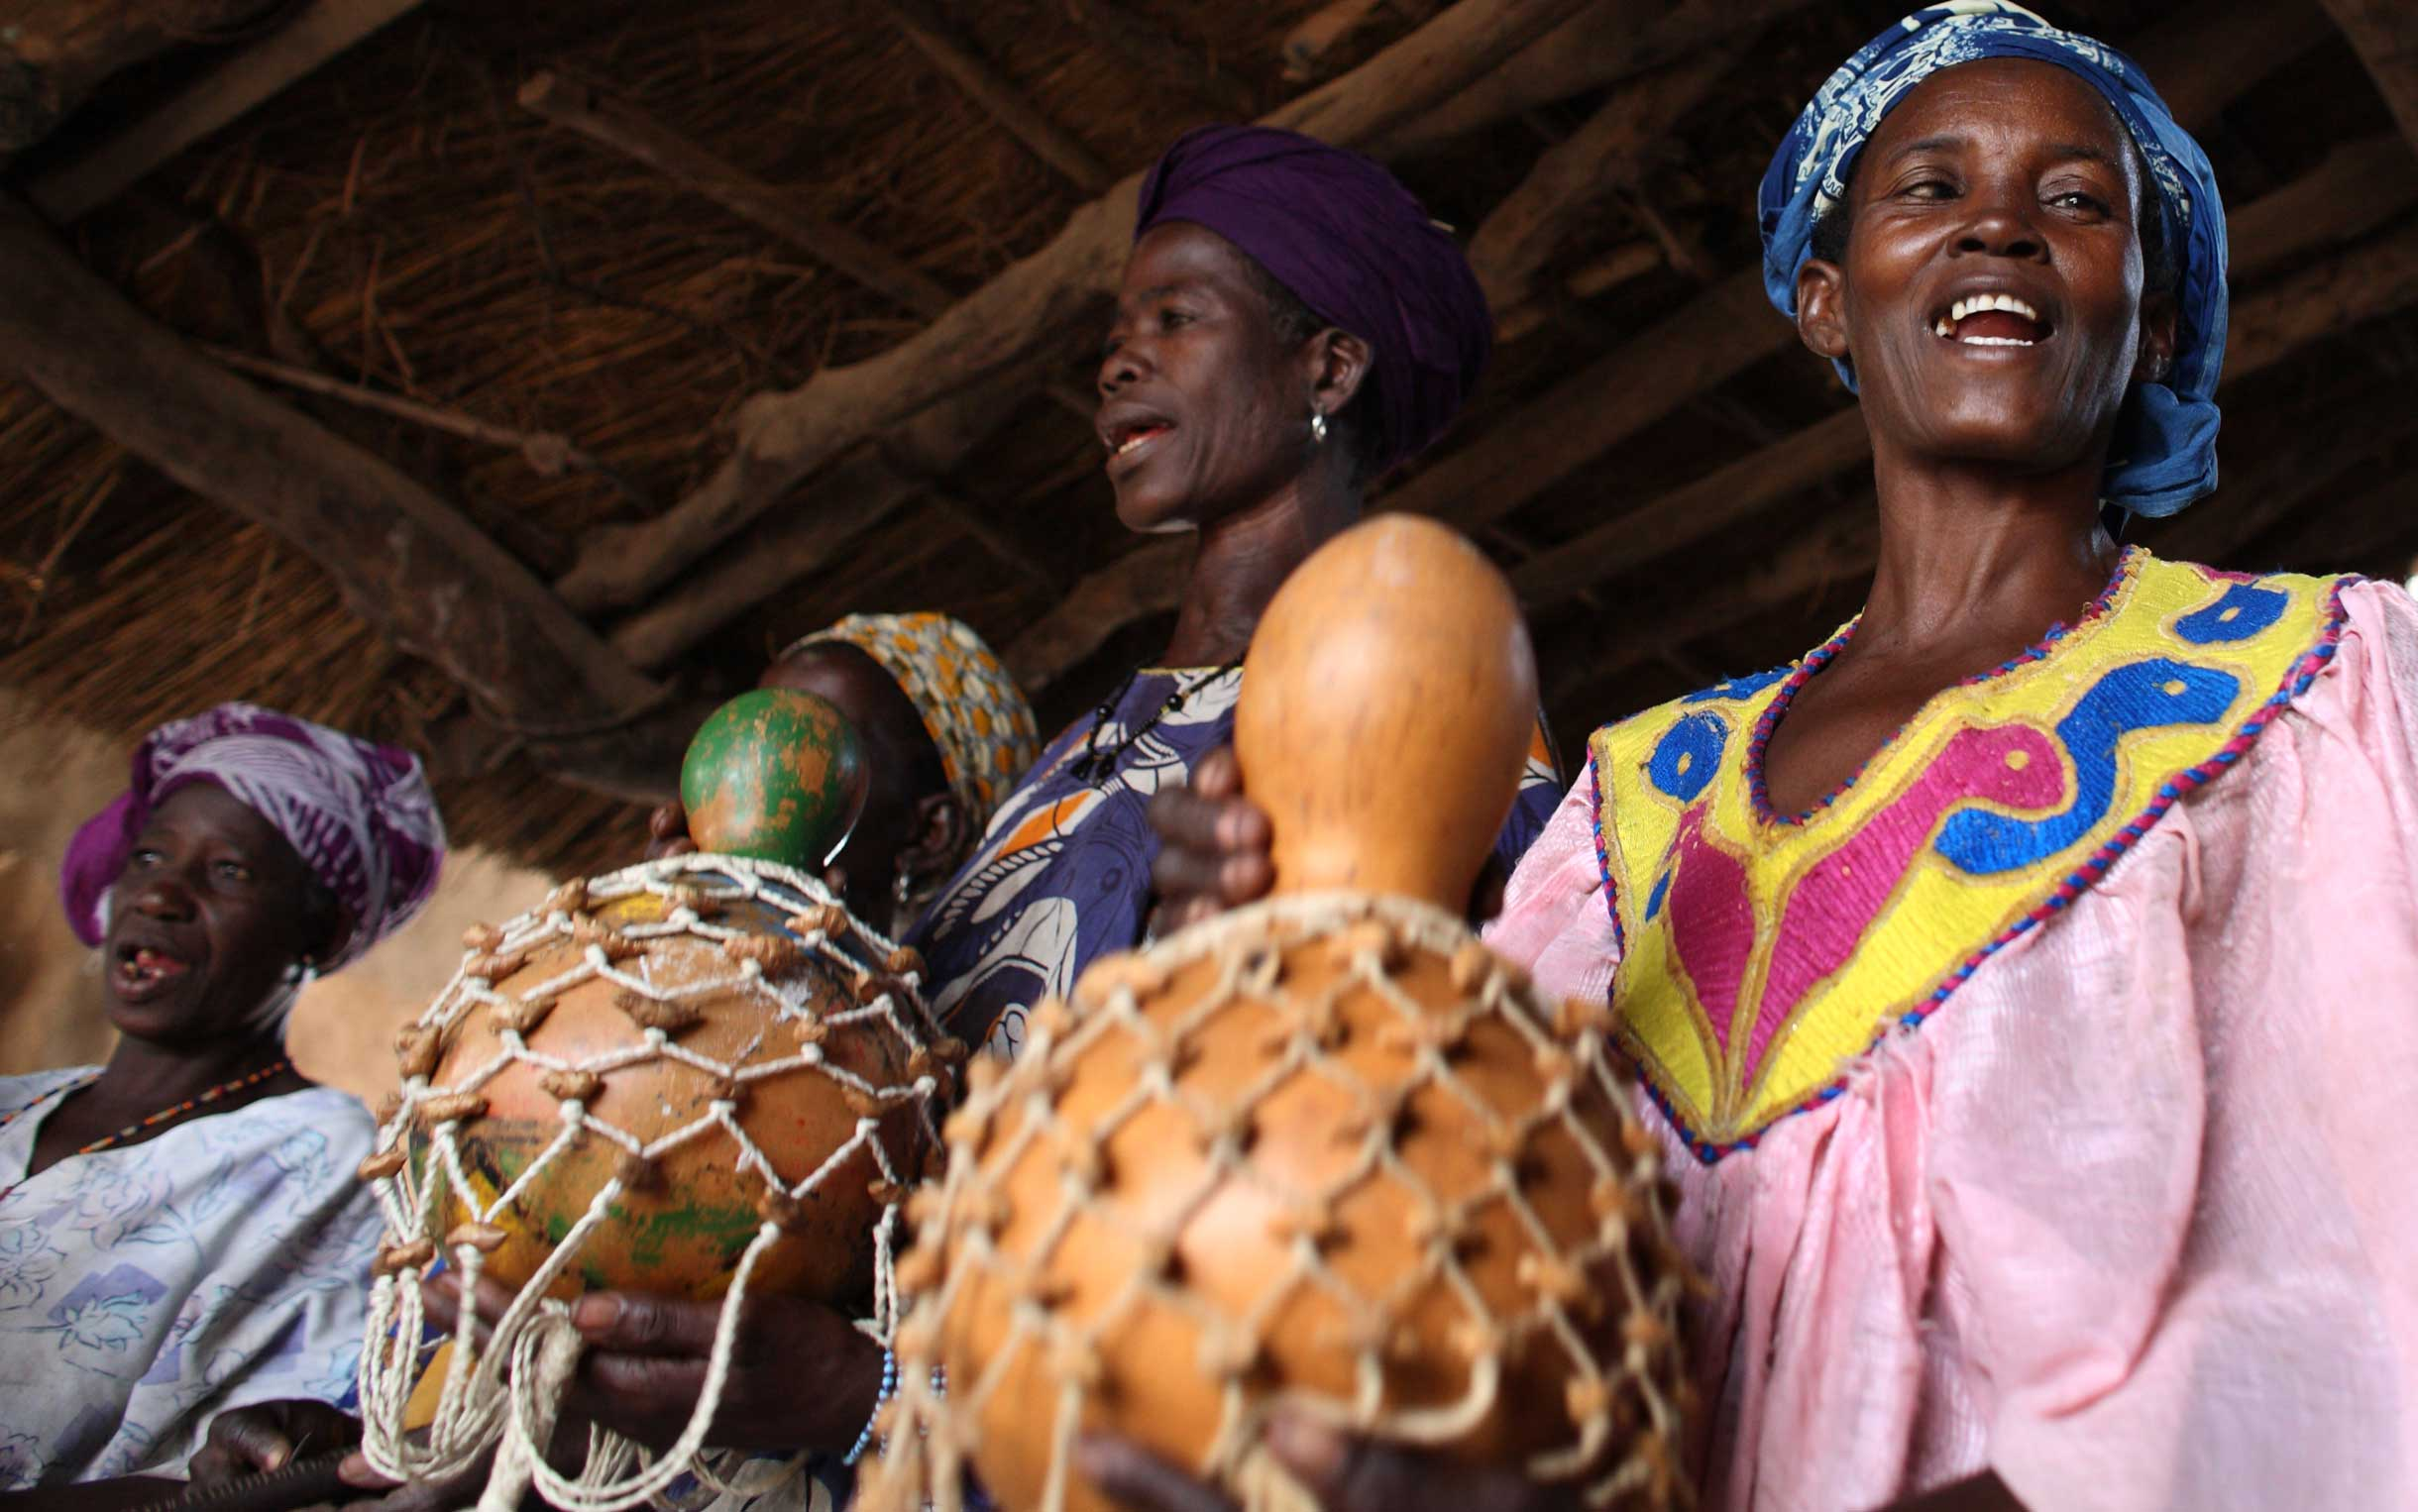 Women in Mali singing and playing instruments. Photo: Rebecca Blackwell/ Oxfam America